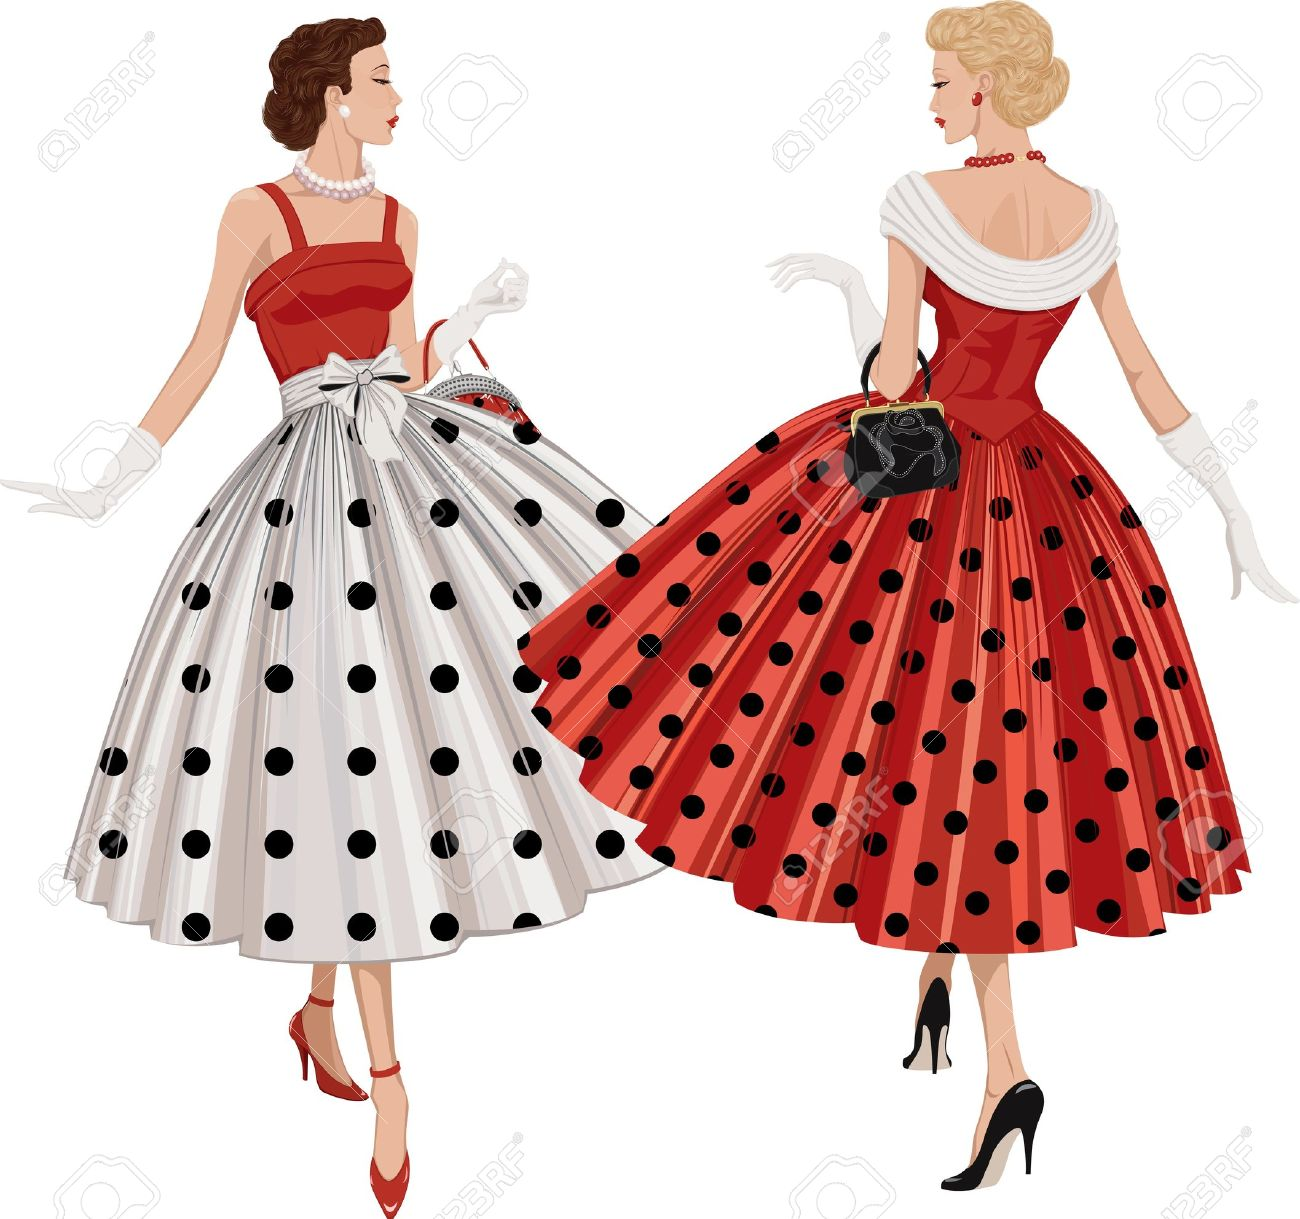 Two elegant women the brunette and the blonde dressed in polka dots garments inspect each other passing by Stock Vector - 12409989